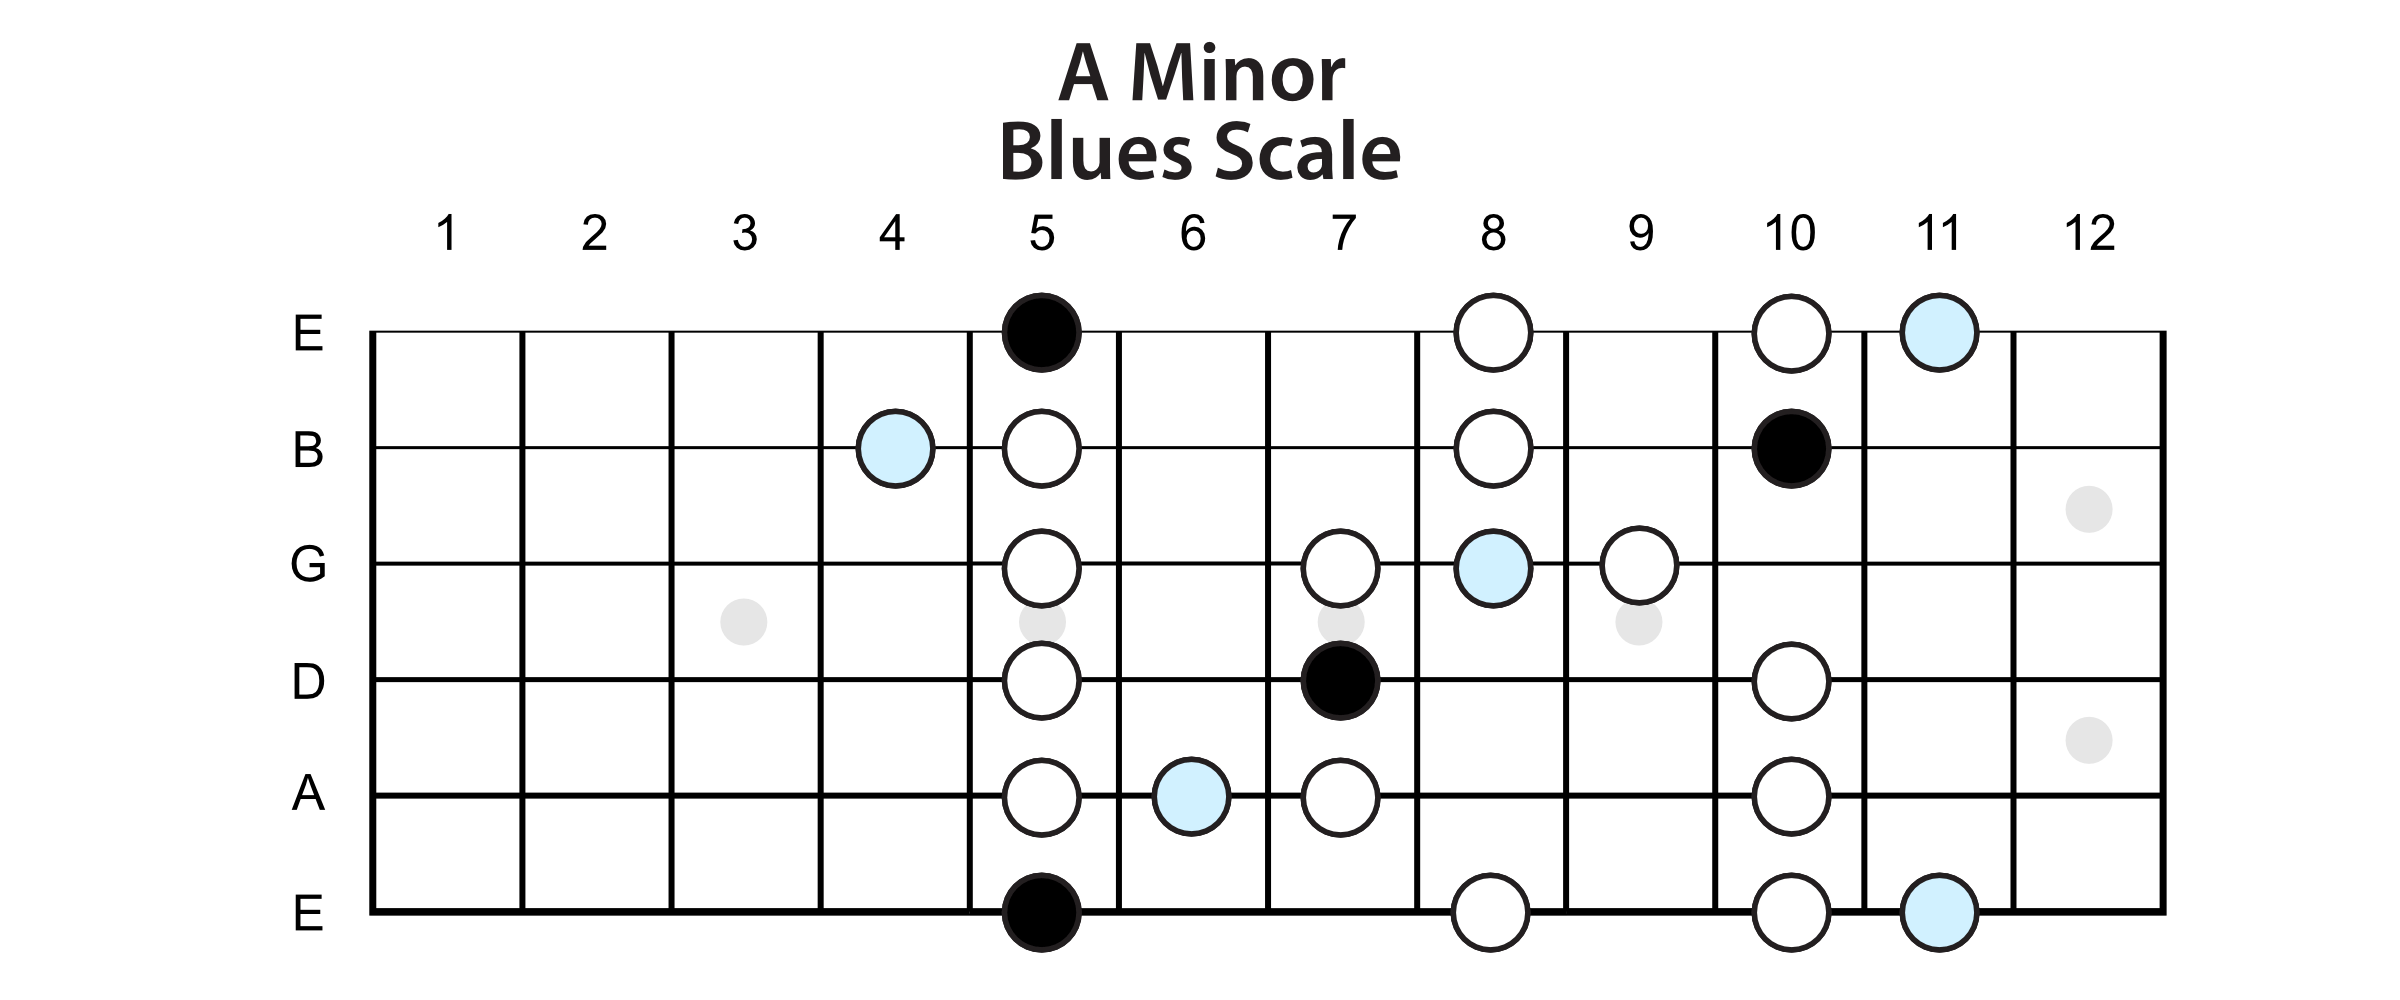 A Minor Blues Scale